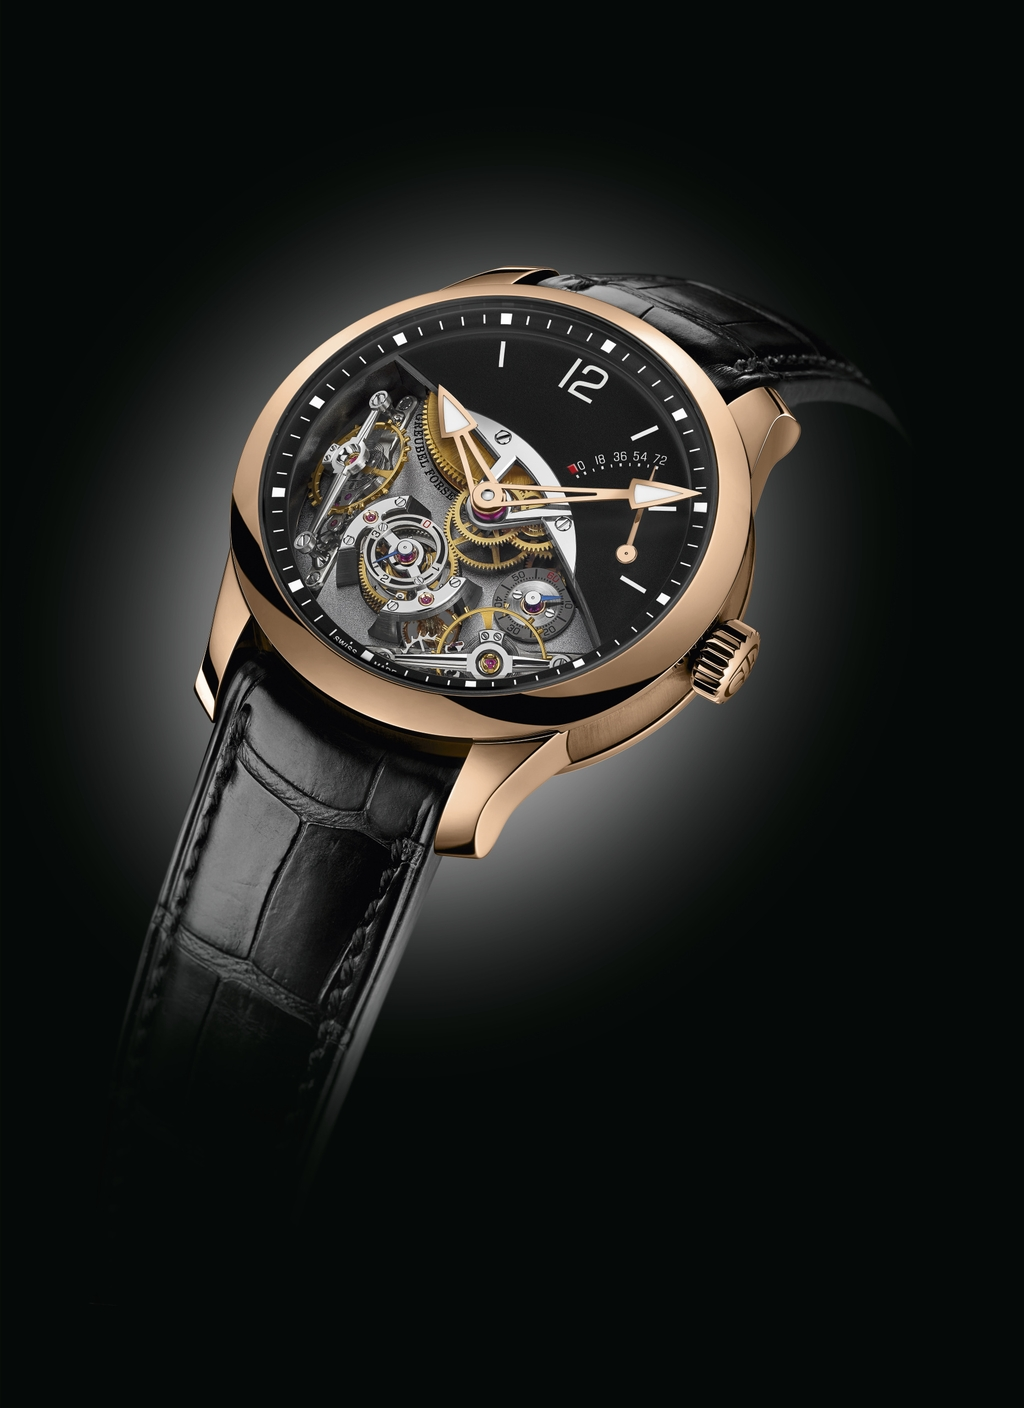 Greubel Forsey Timepieces: Double Balancier Oblique view